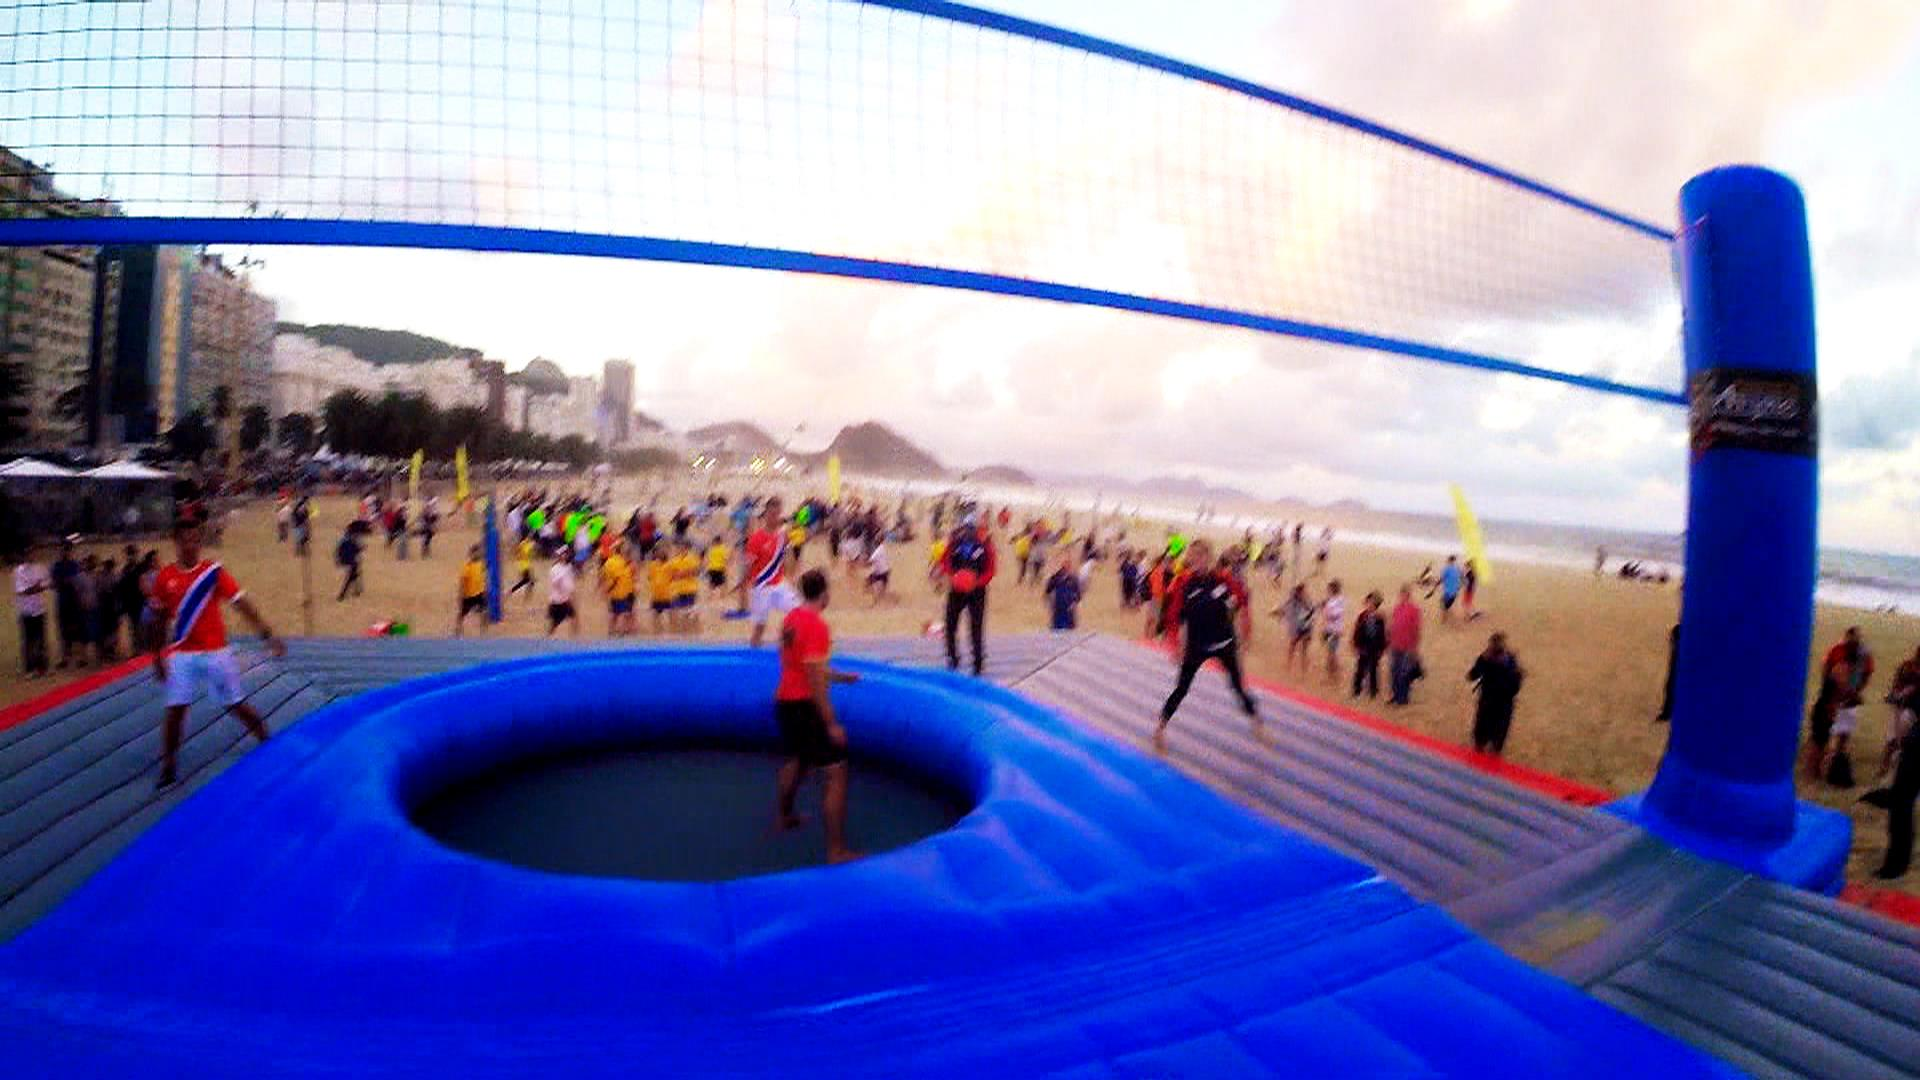 What is bossaball See TODAY anchors compete on inflatable court 1920x1080